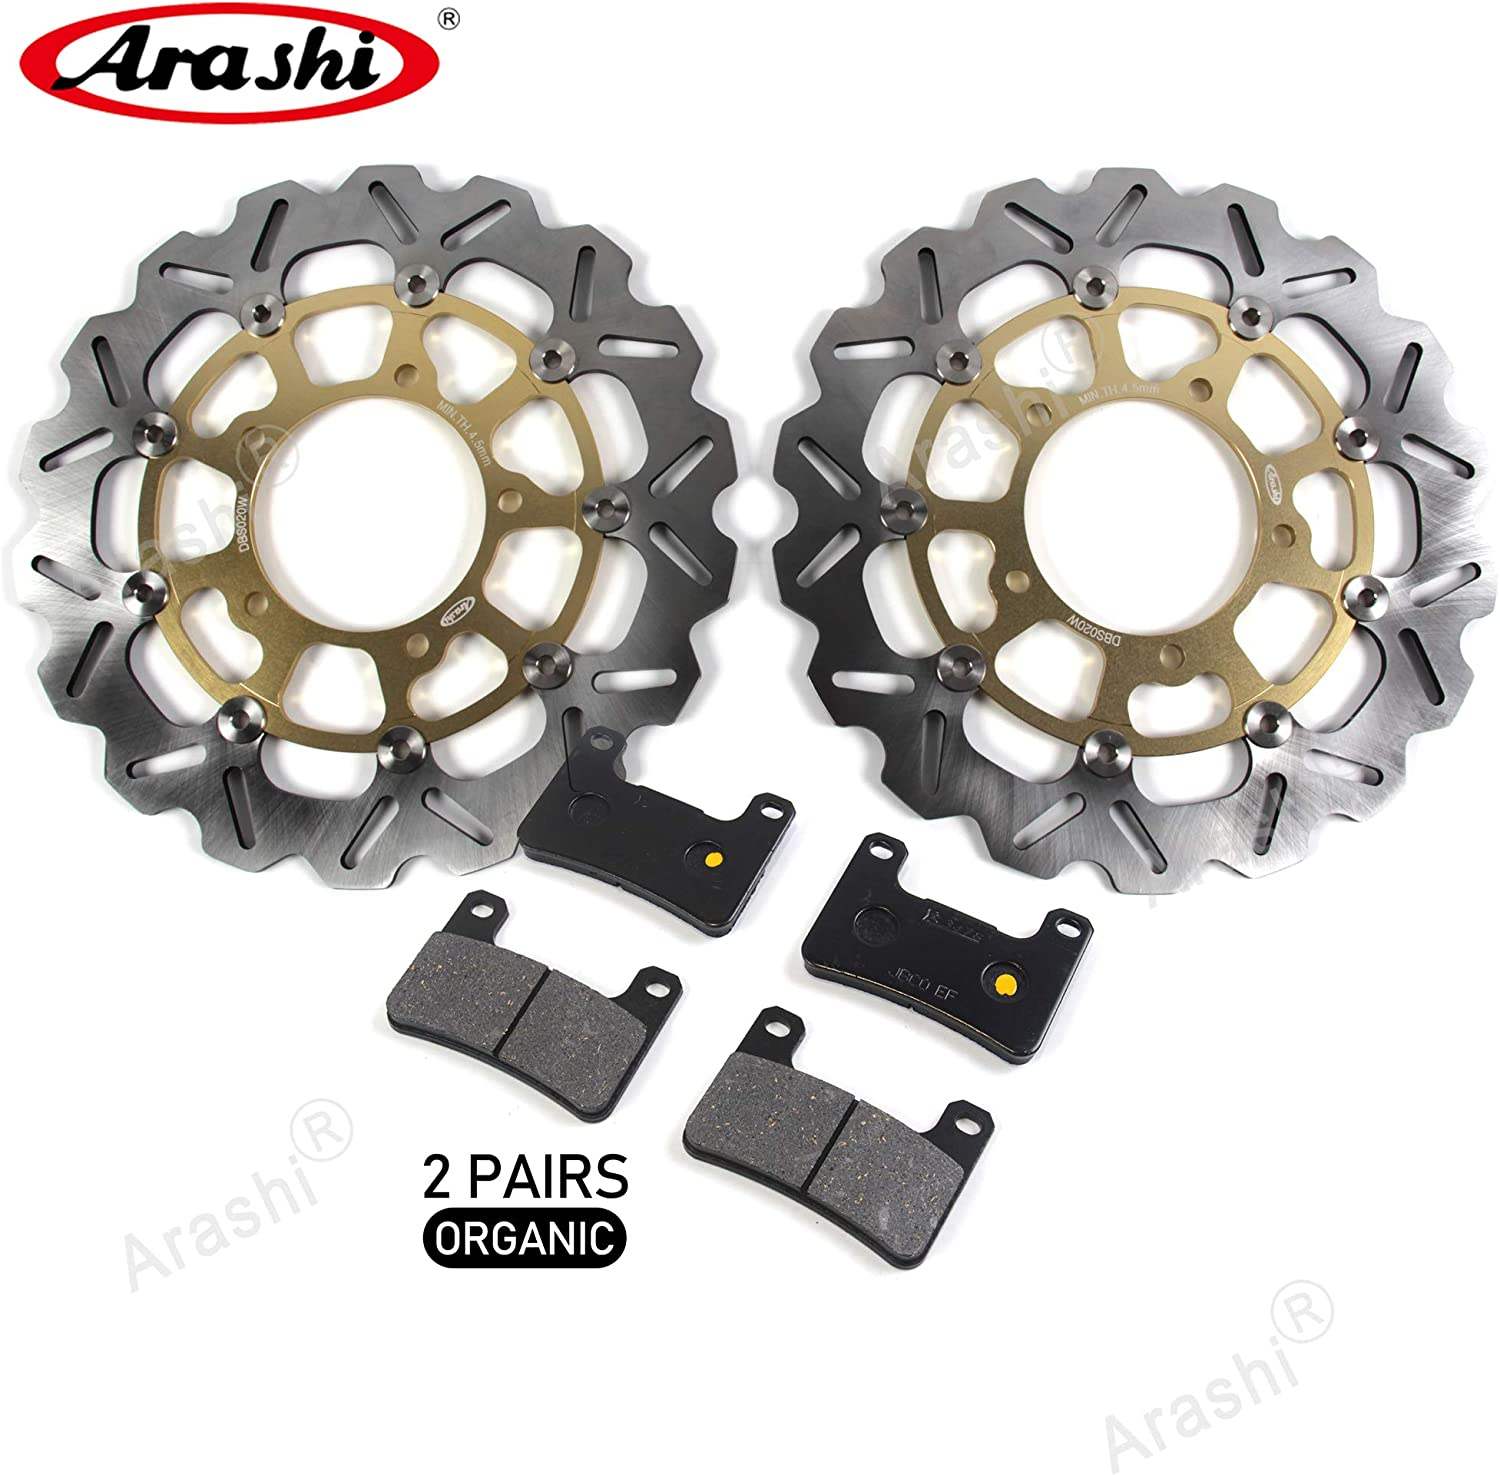 Arashi New Shipping Free Front Brake Rotors Disc and Suzuki OFFicial shop 600 Pads GSXR Kit for